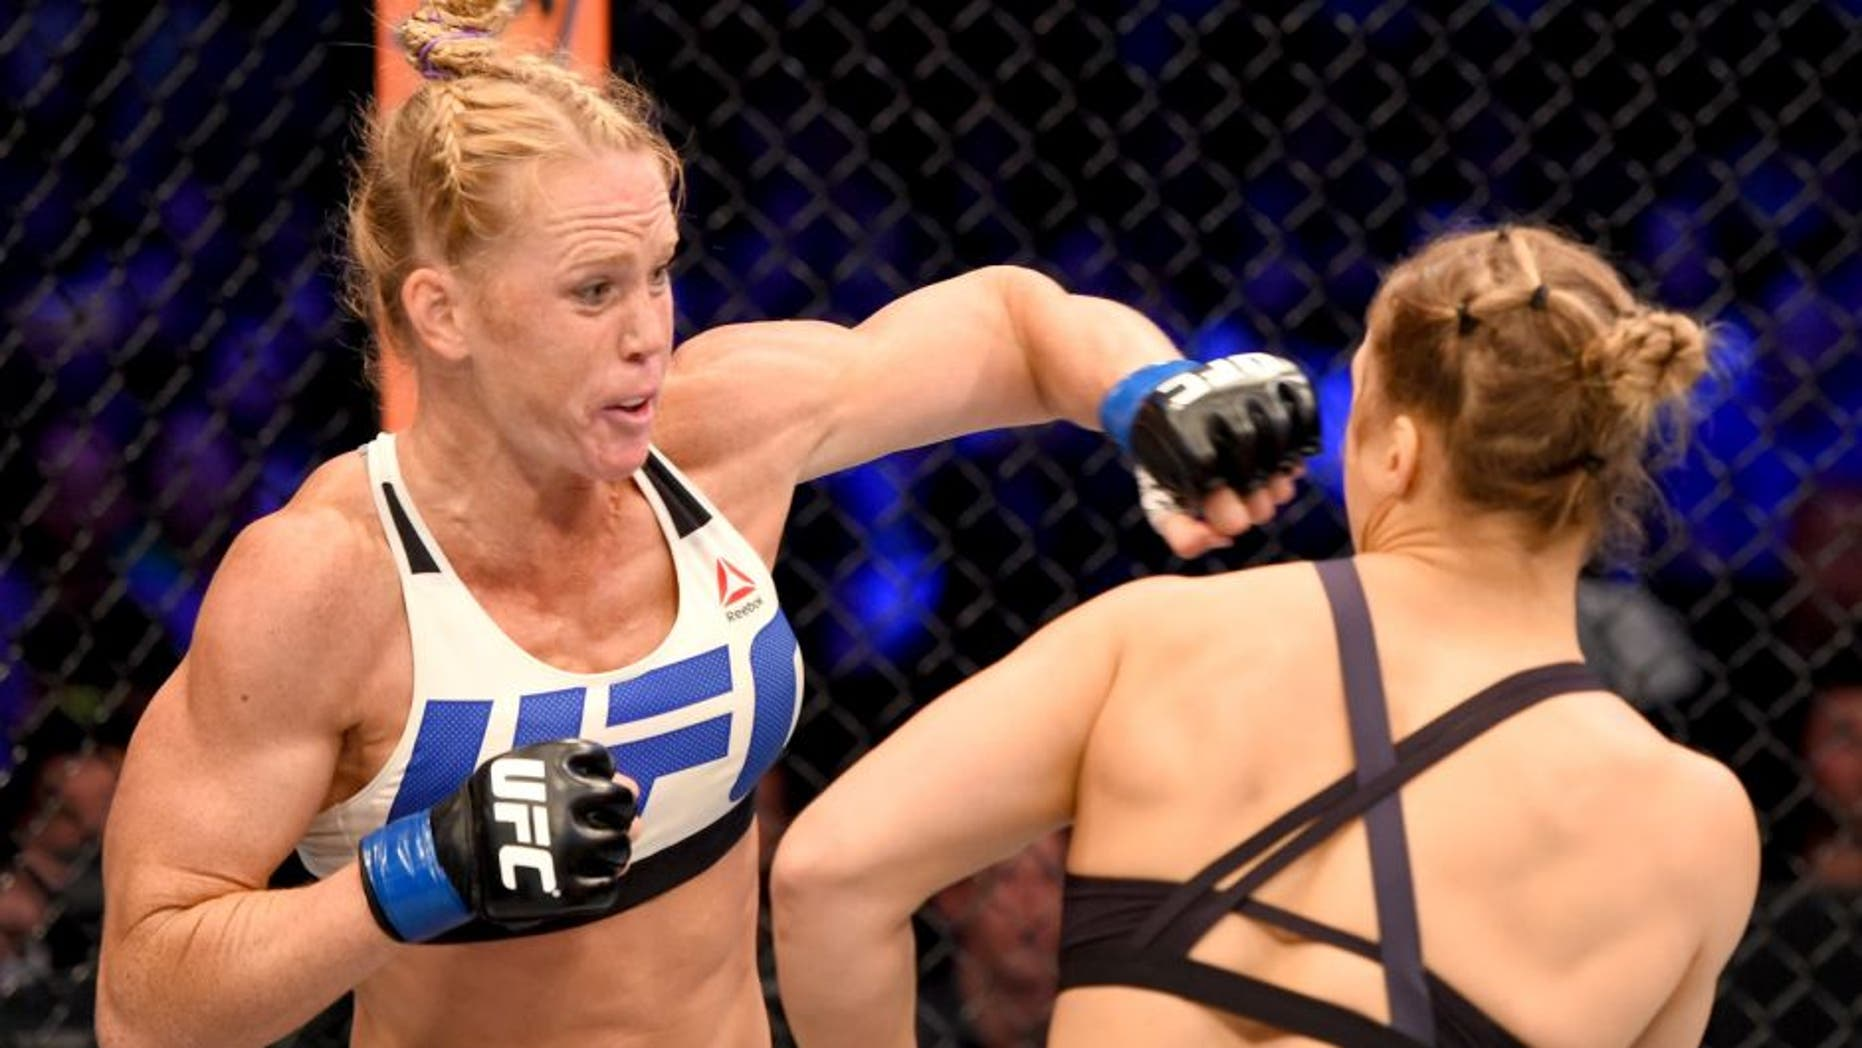 MELBOURNE, AUSTRALIA - NOVEMBER 15: (L-R) Holly Holm of the United States punches Ronda Rousey of the United States in their UFC women's bantamweight championship bout during the UFC 193 event at Etihad Stadium on November 15, 2015 in Melbourne, Australia. (Photo by Josh Hedges/Zuffa LLC/Zuffa LLC via Getty Images)